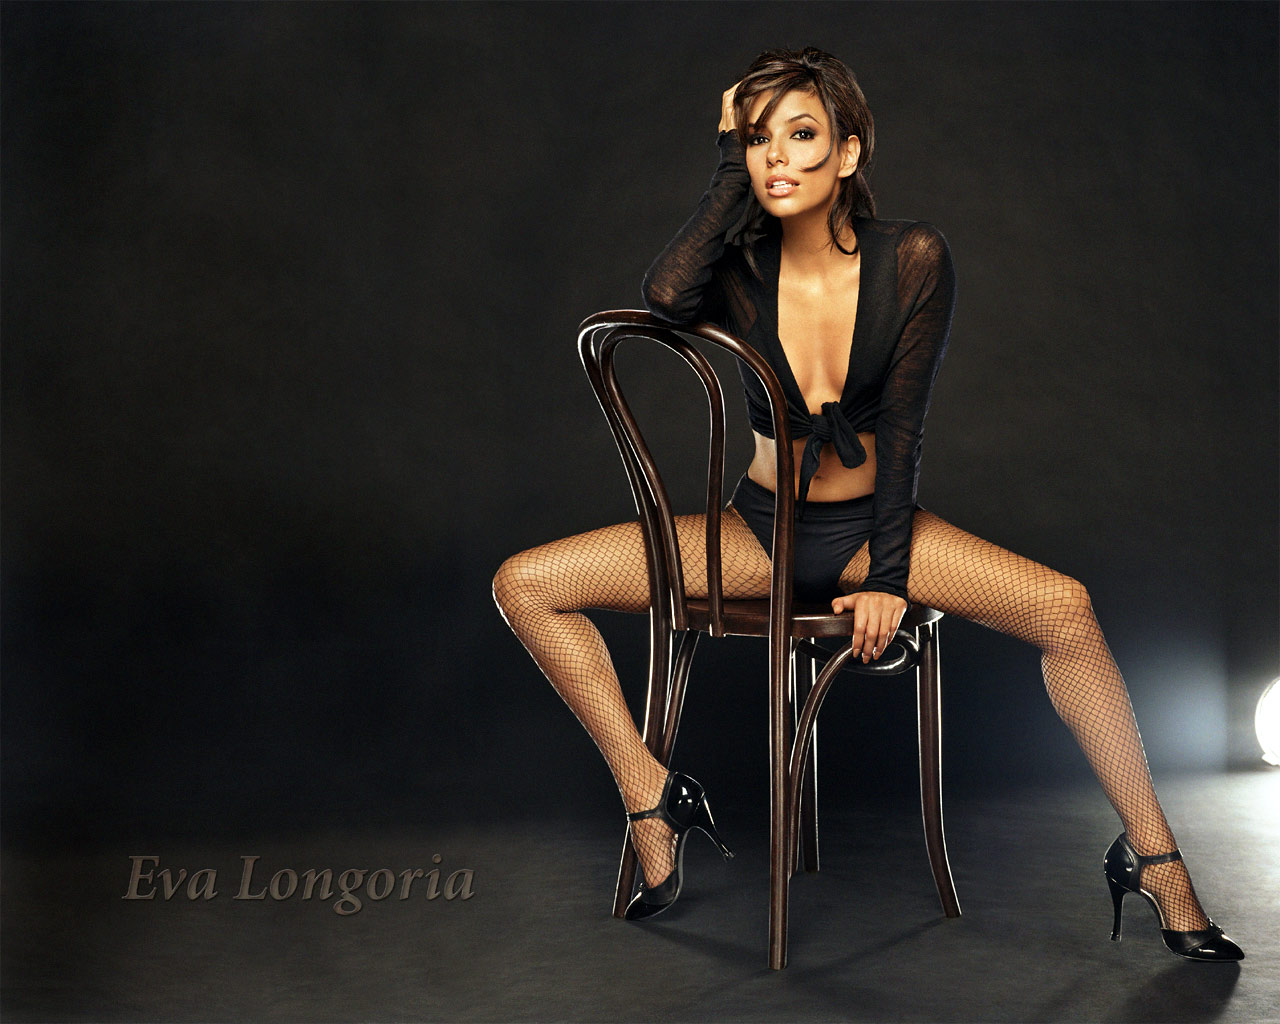 eva longoria wallpapers and photos beautifully pictured on digital photo club